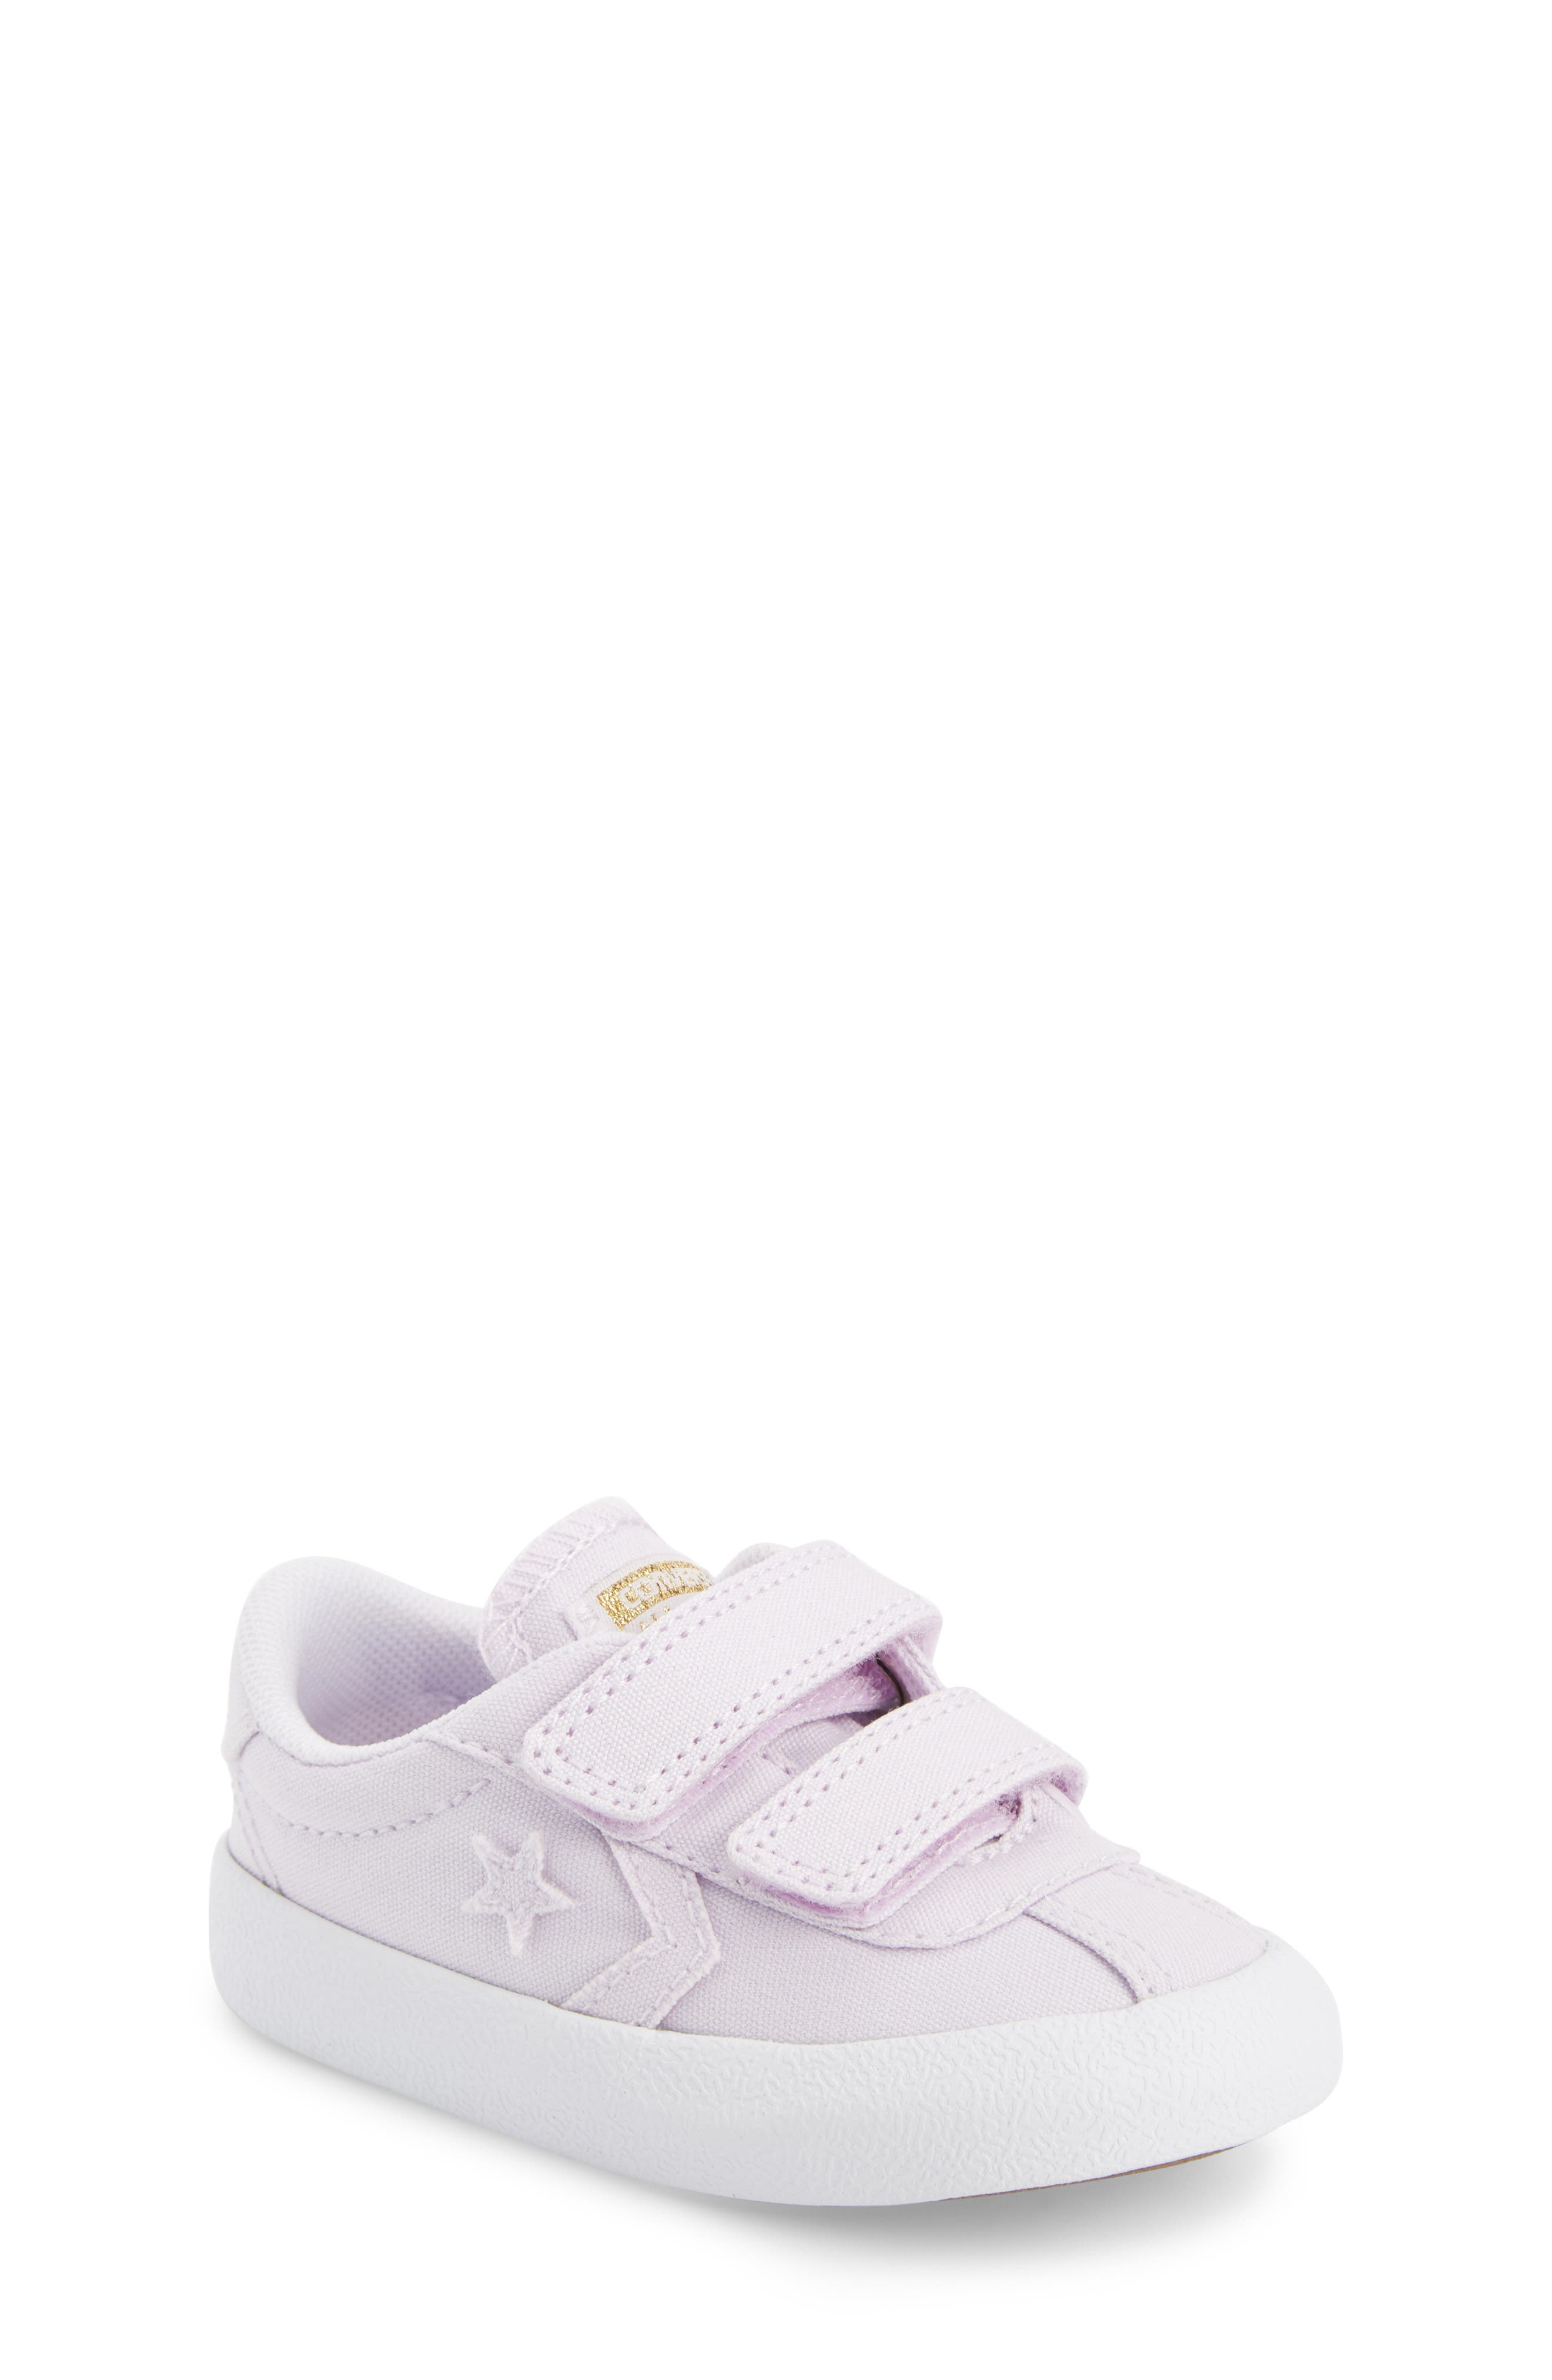 Breakpoint Sneaker,                         Main,                         color, Barely Grape